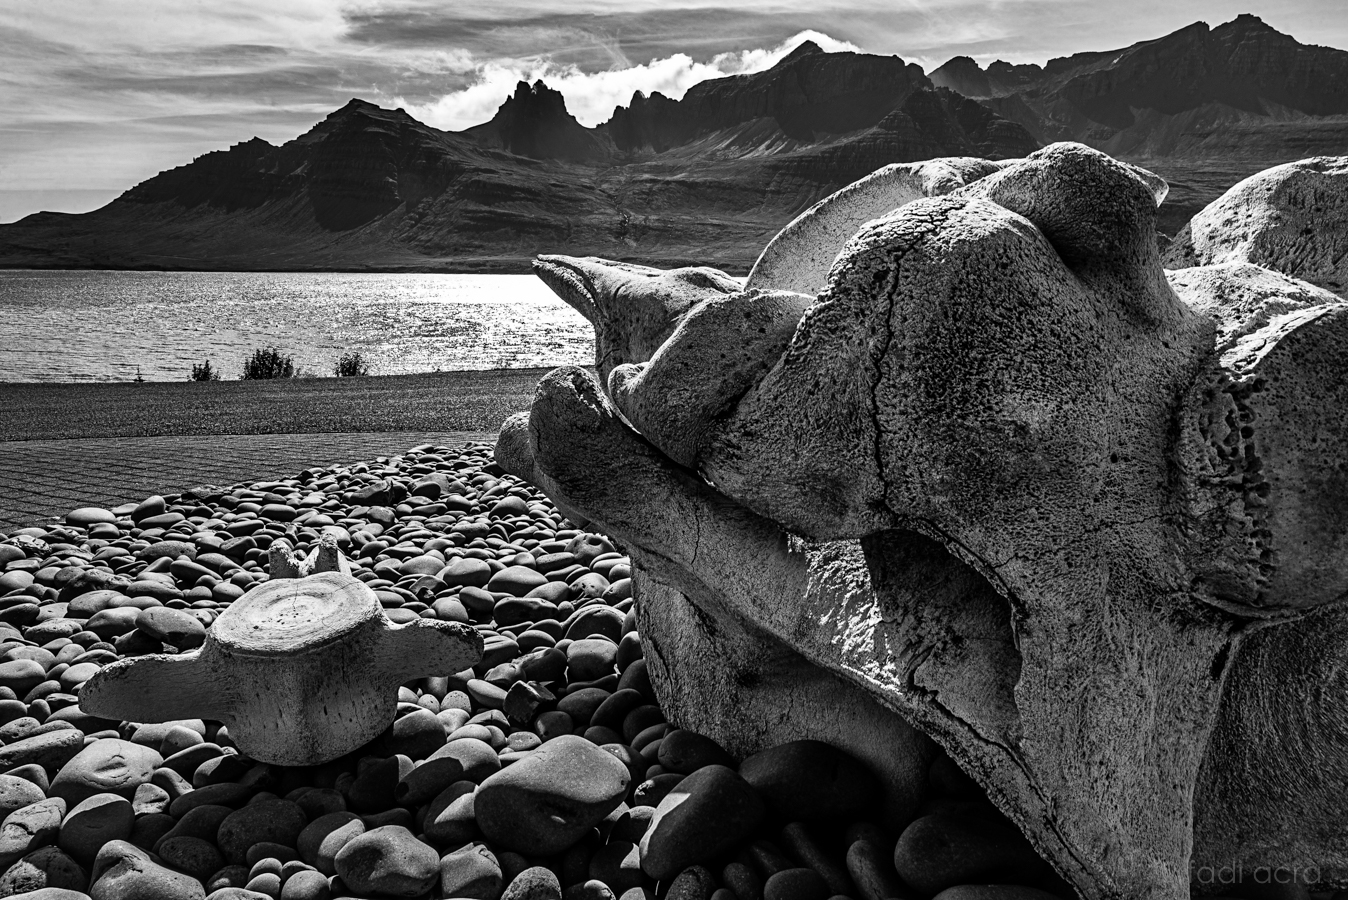 photo of whale scull bone overlooking a Fjord in Iceland